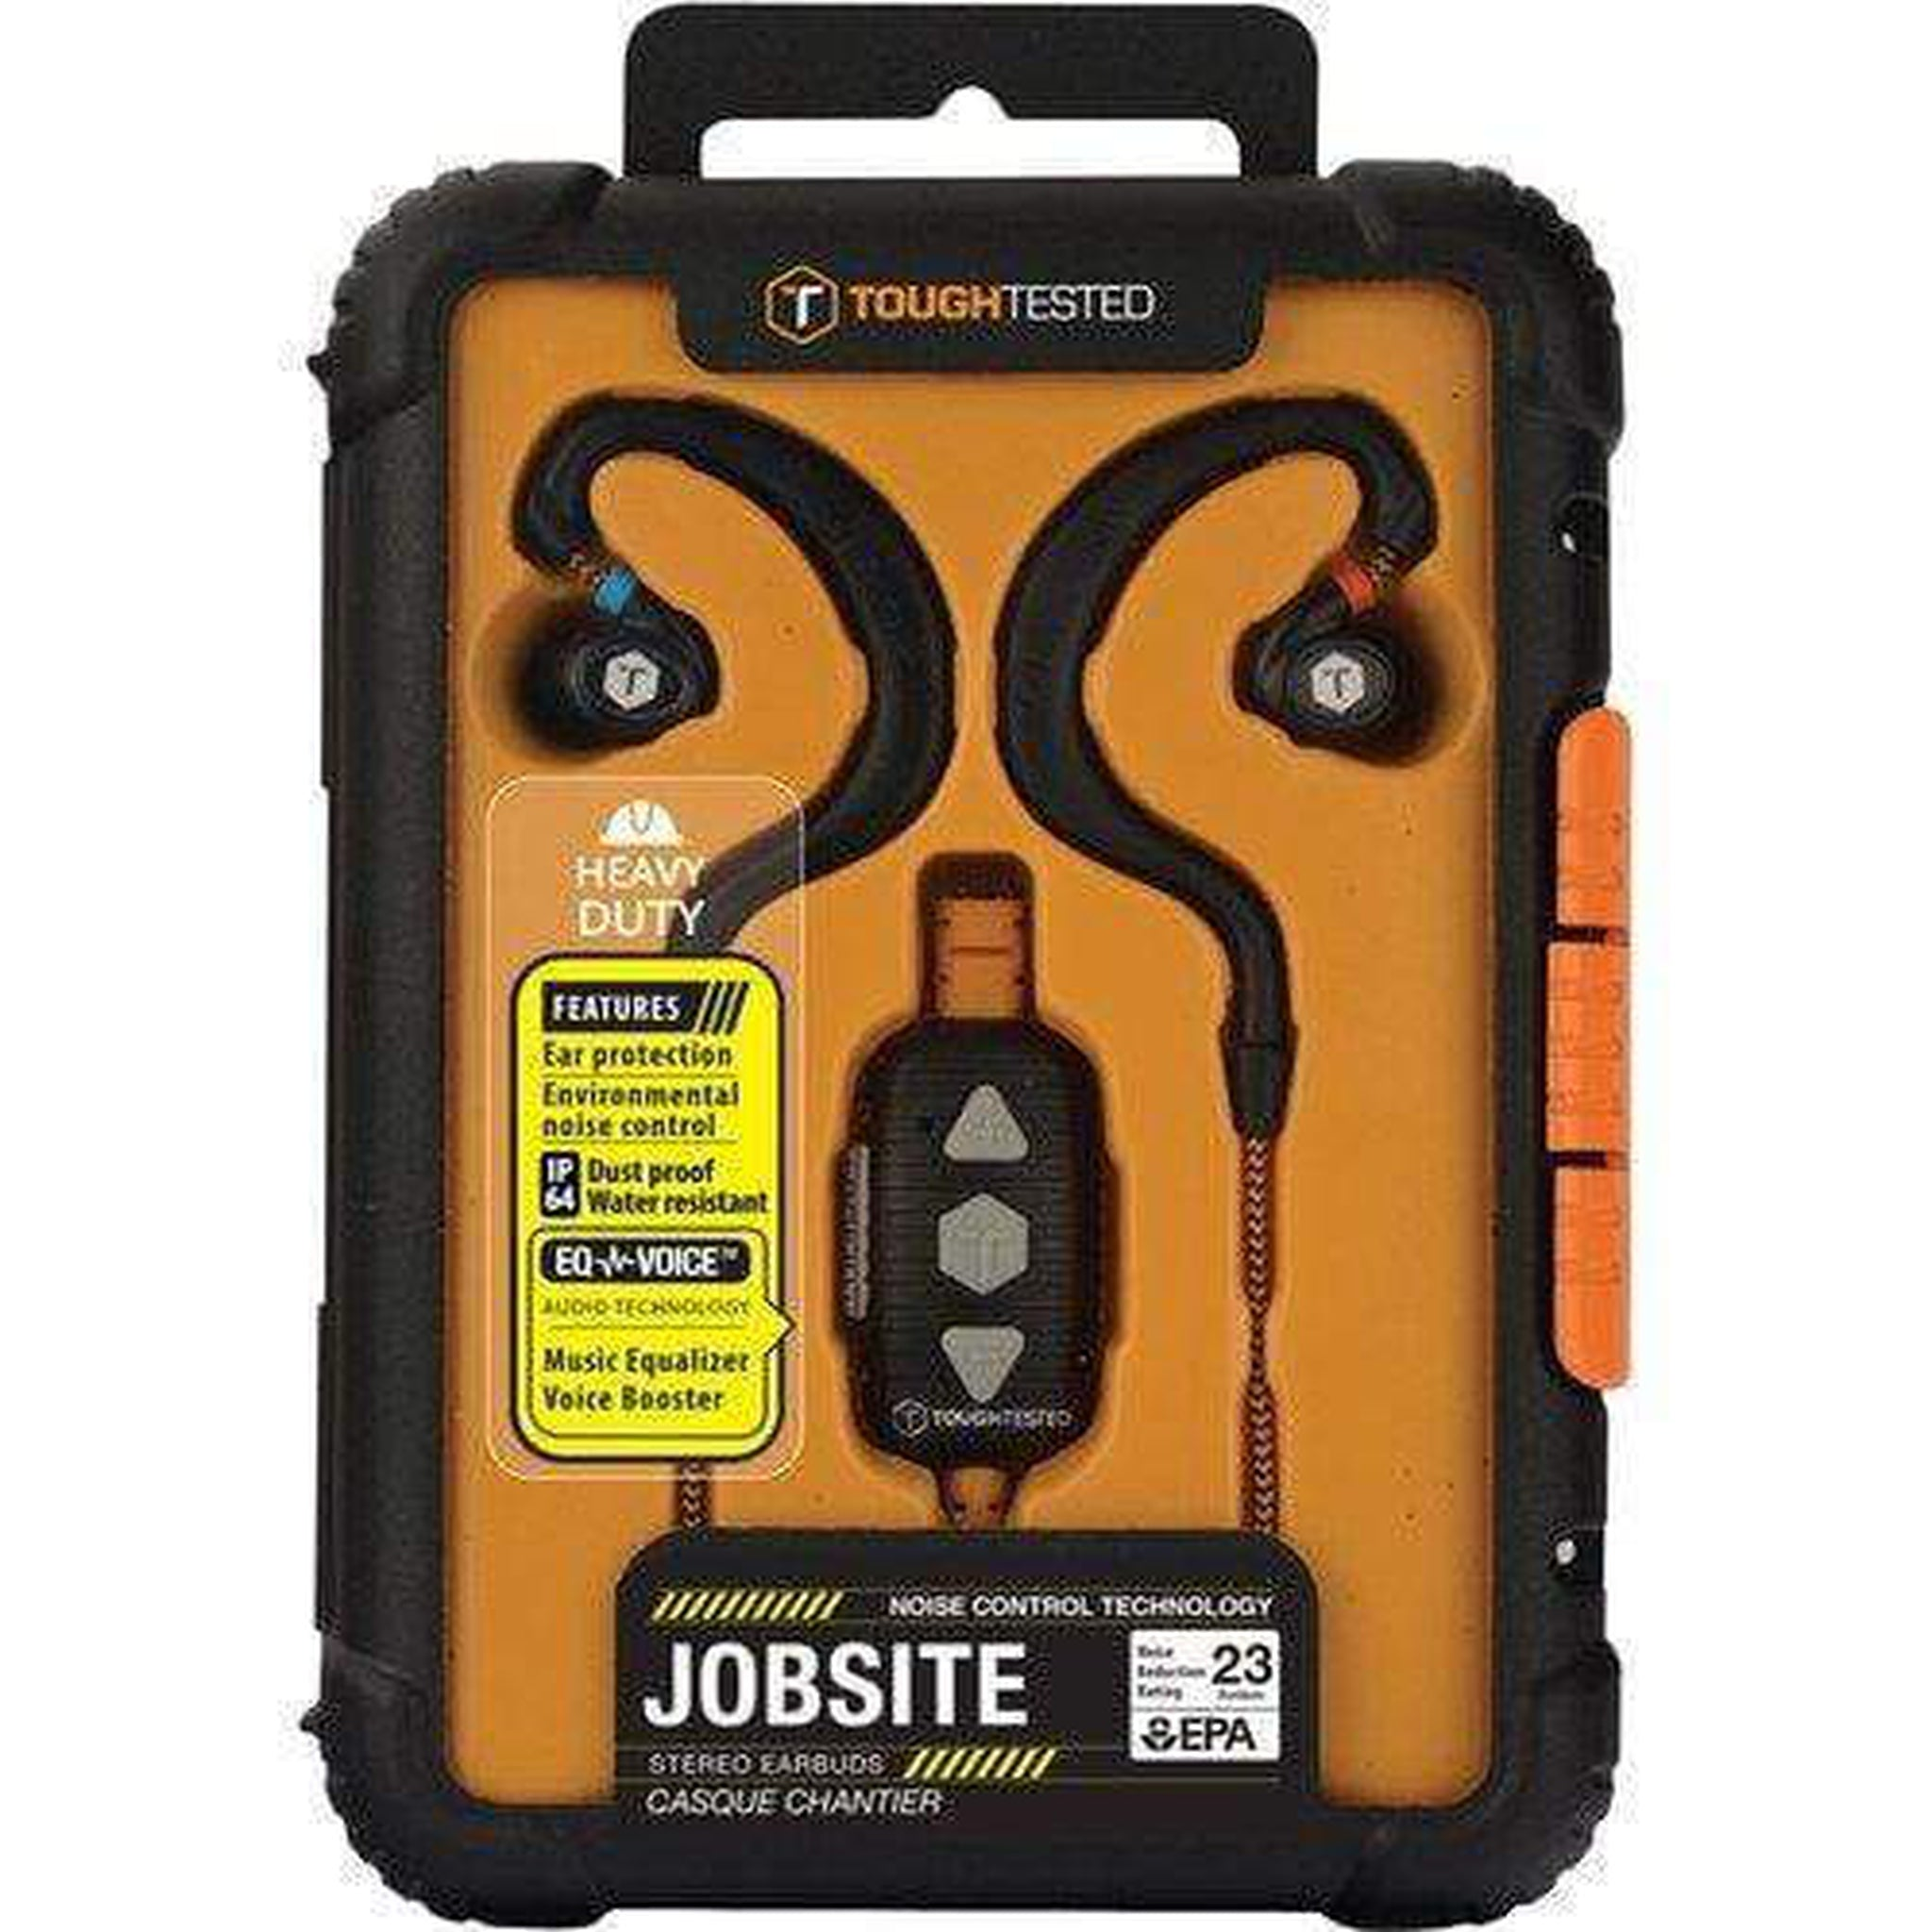 TOUGH TESTED EARBUD JOBSITE DUSTPROOF - Choice Computer Technologies